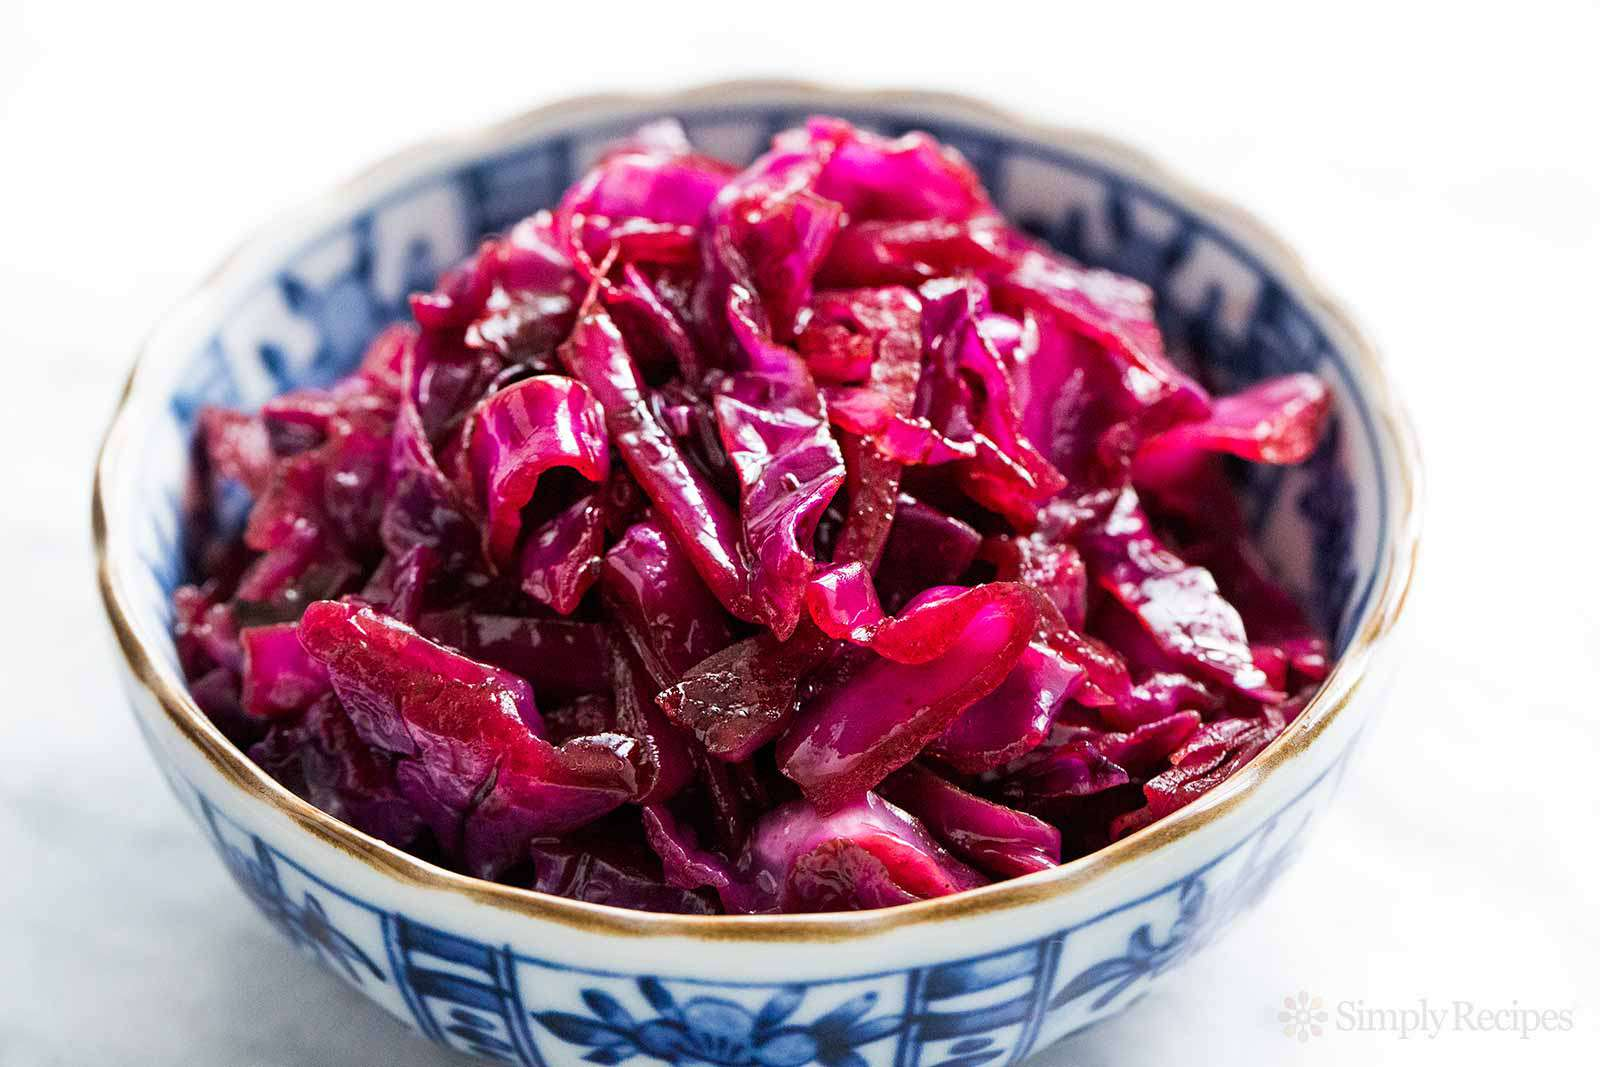 Stovetop Braised German Red Cabbage in a bowl